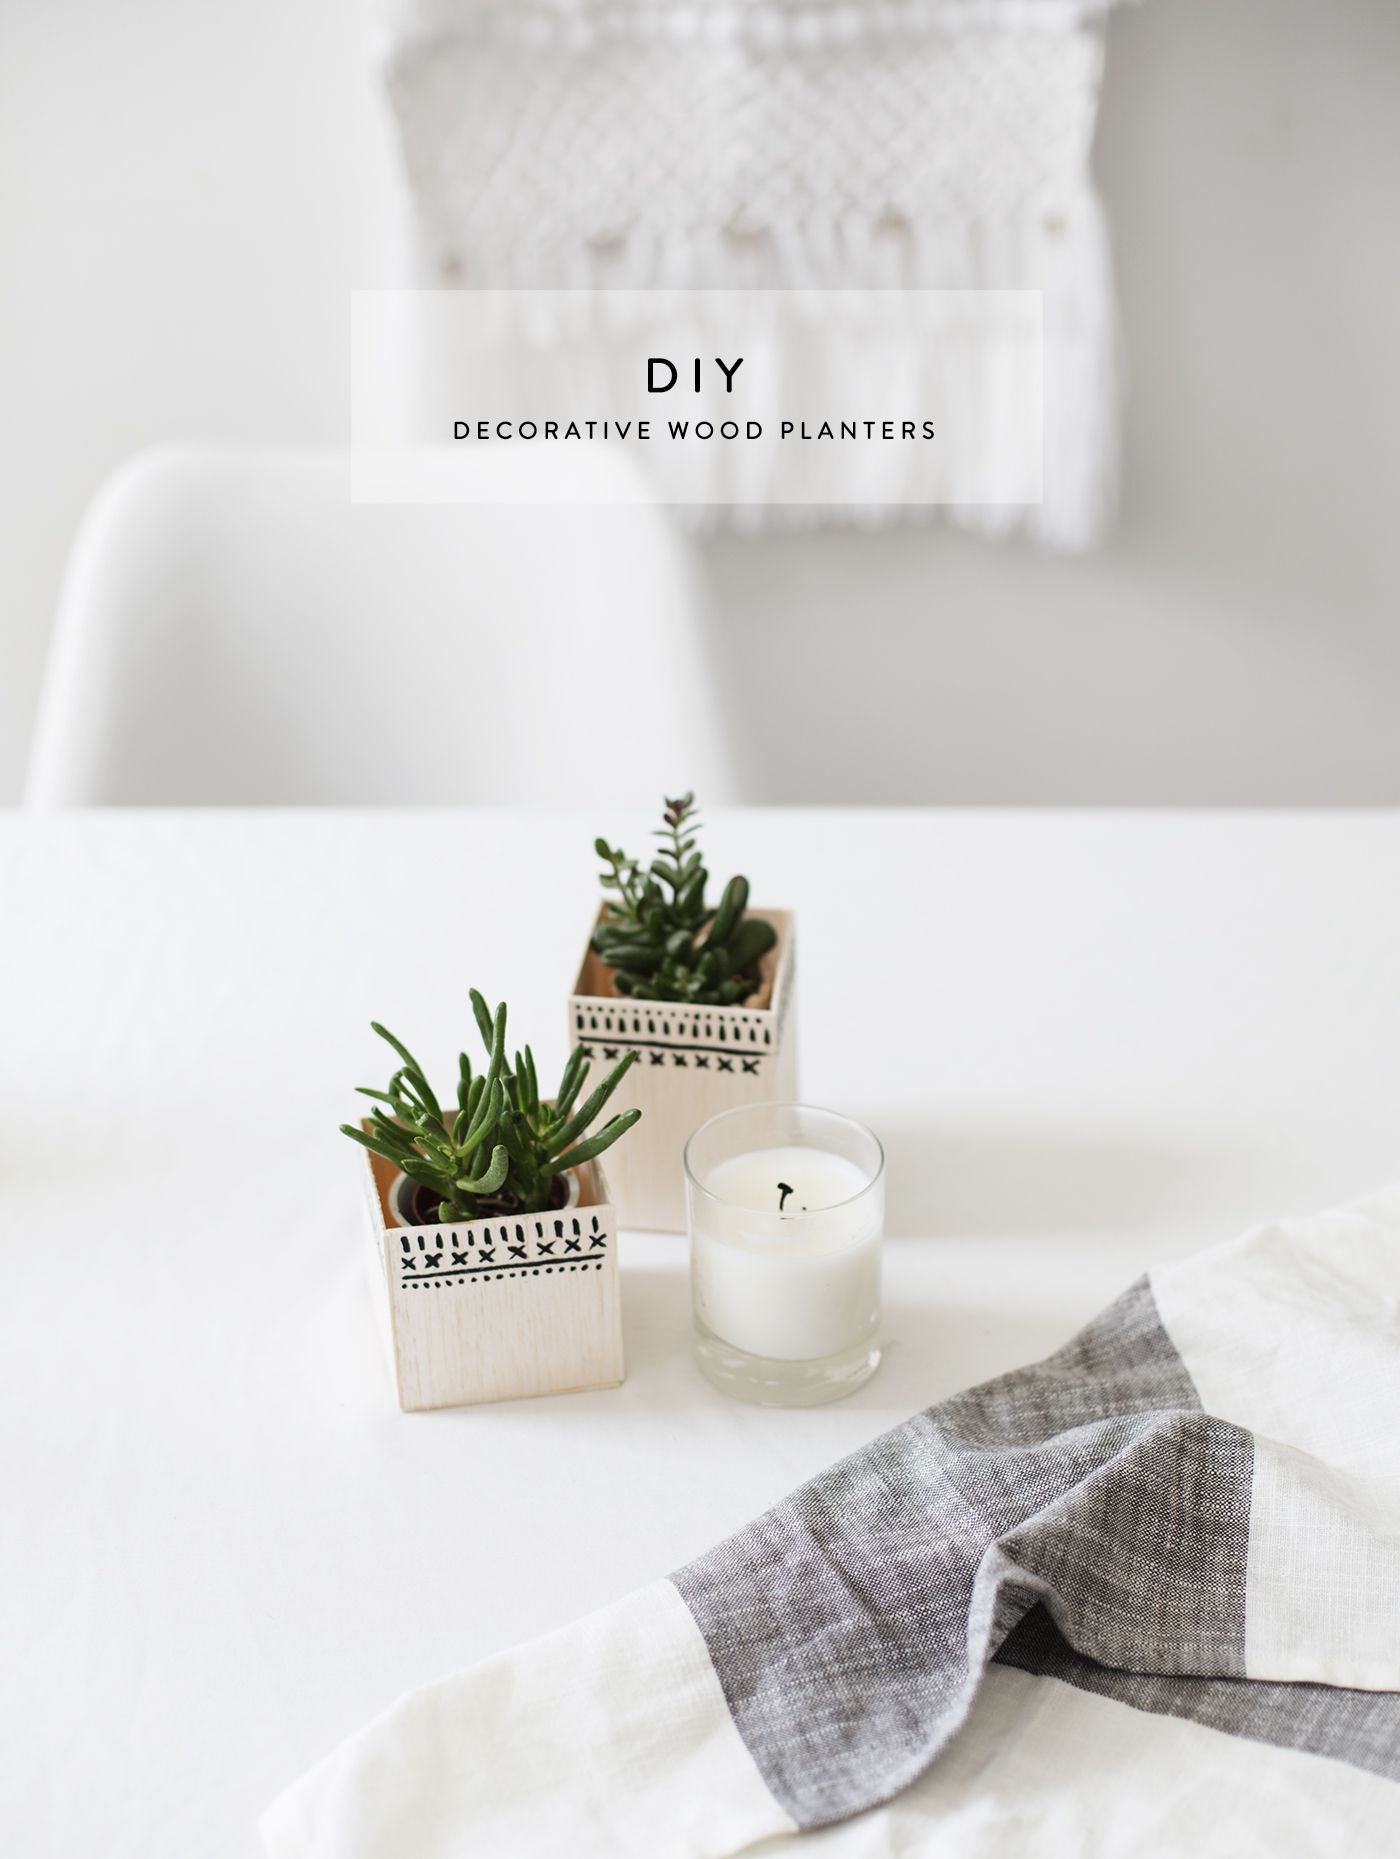 DIY decorative wood planters | easy home craft ideas | diy ...